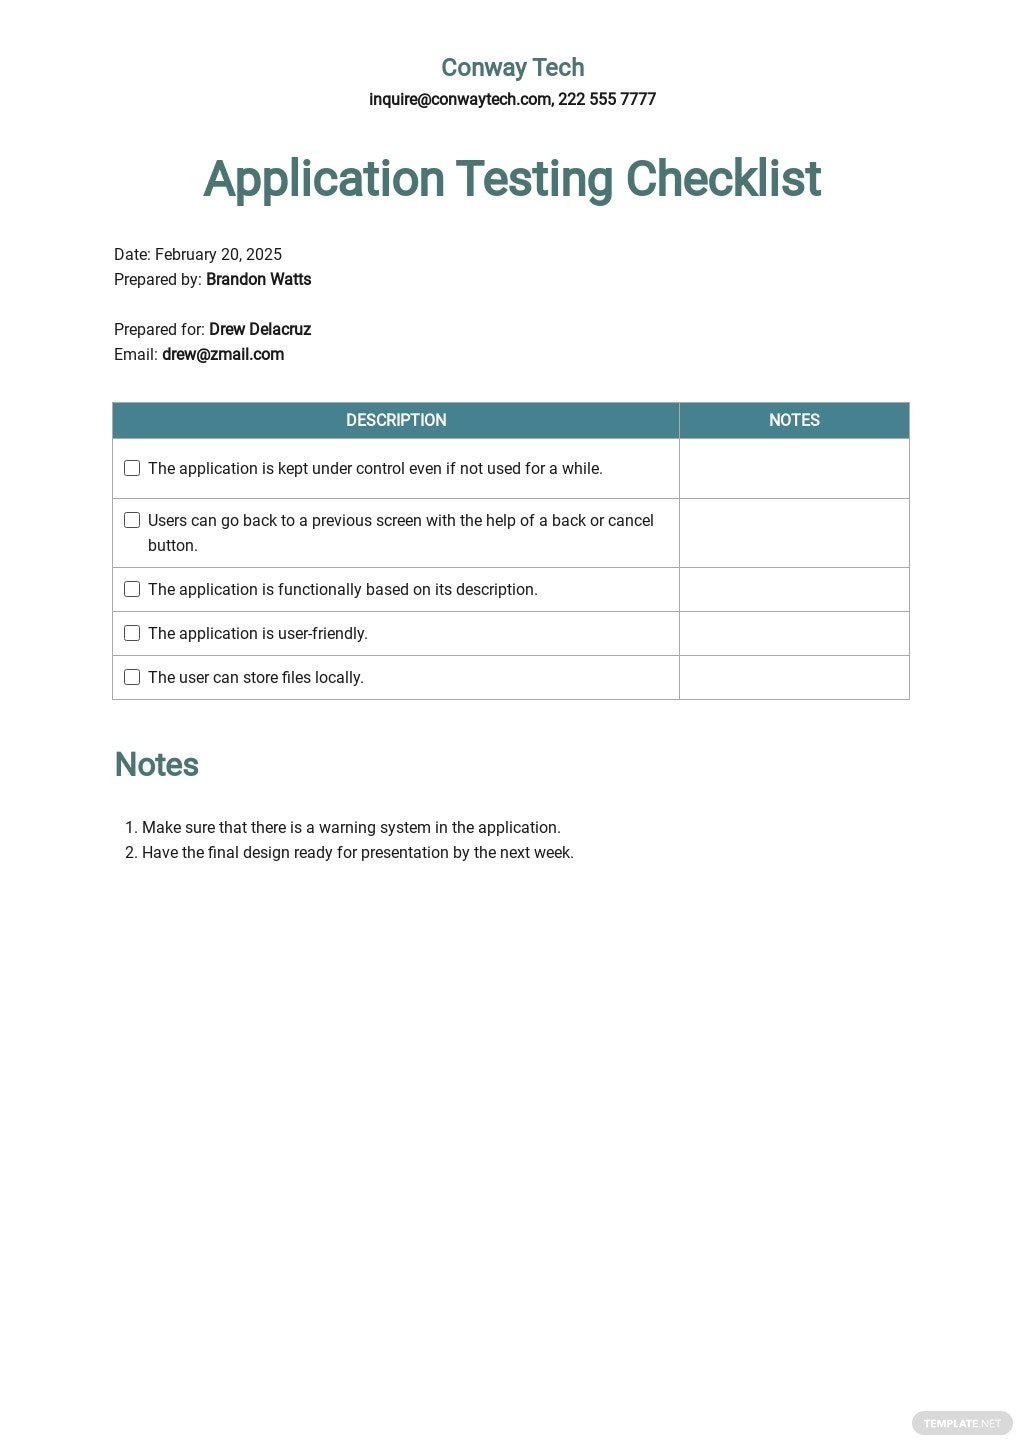 Application Testing Checklist Template